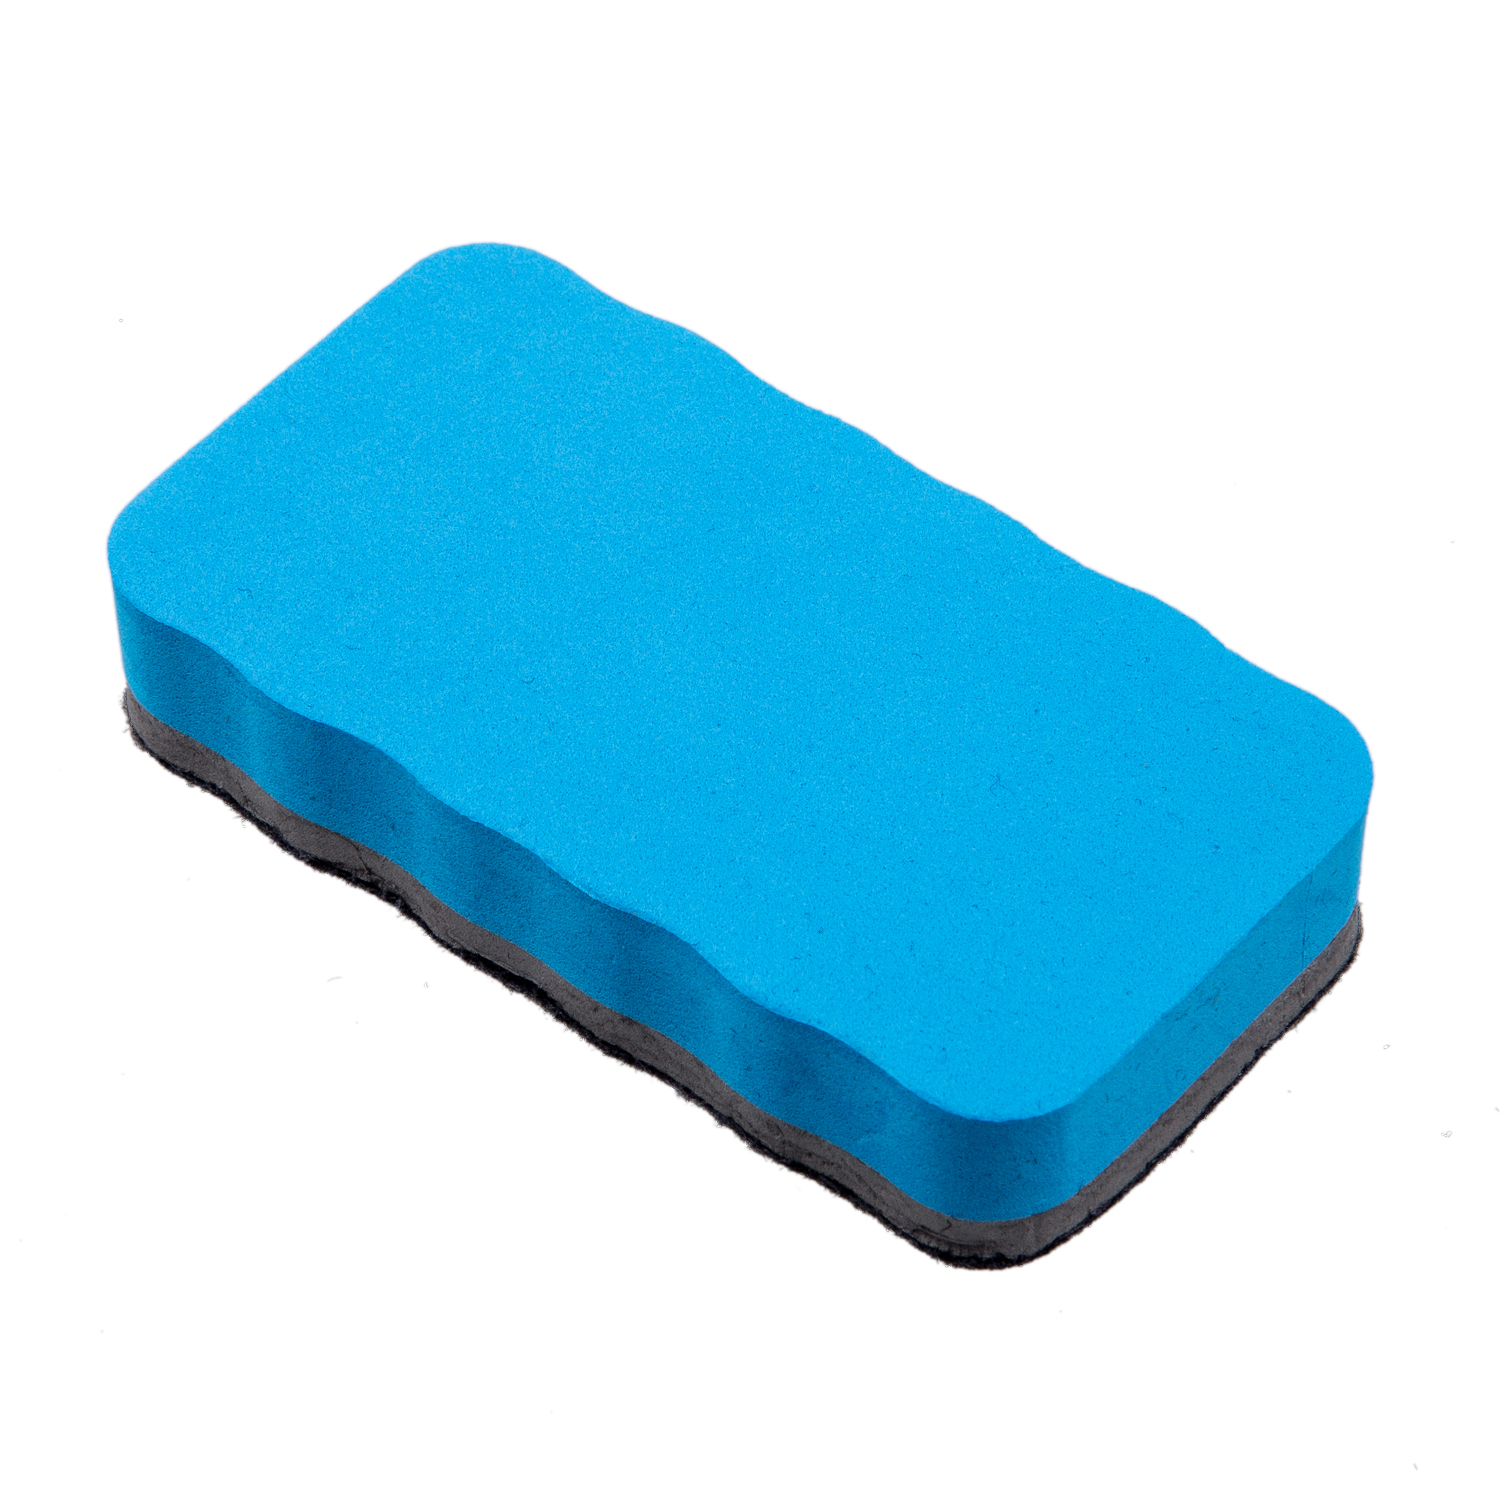 Magnetic White Board Dry Wipe Drywipe Cleaner Eraser